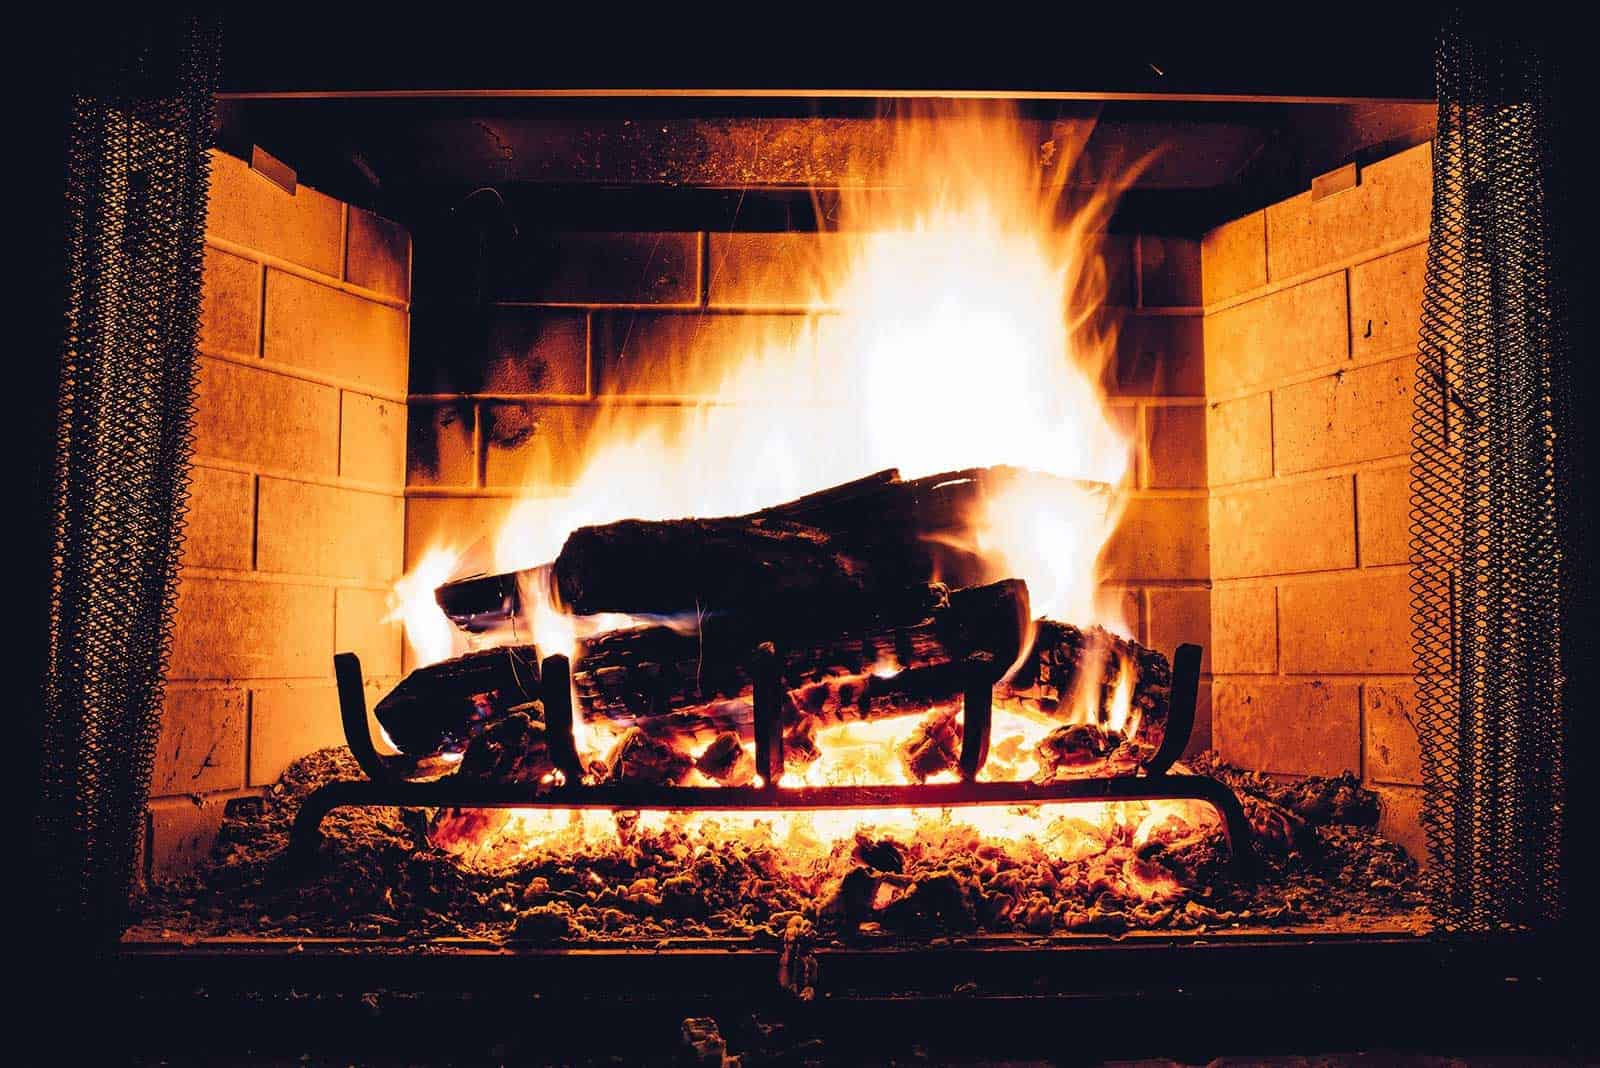 Heat Your Home Fireplace